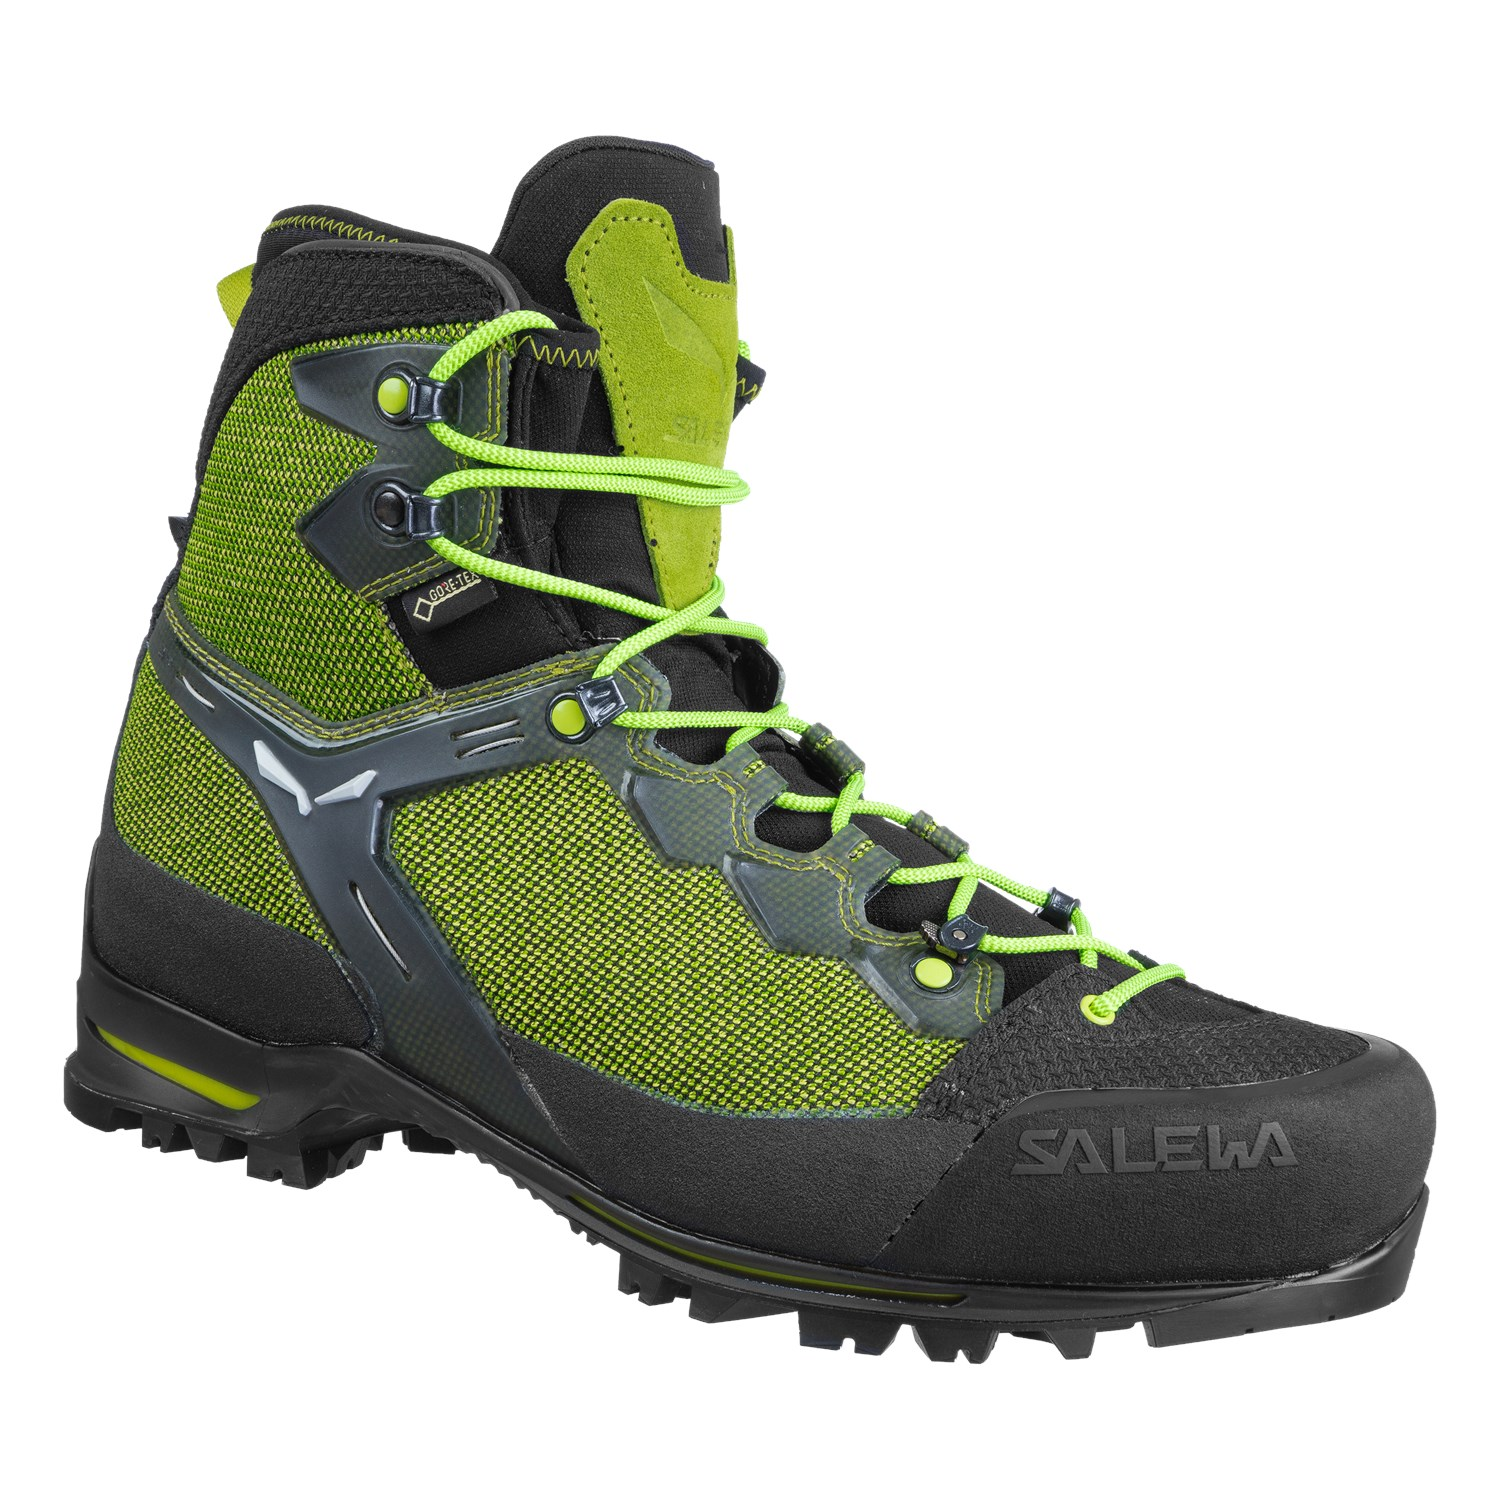 216fc967d5961 Mountaineering Boots & Shoes for Men ✓ Outdoors | Salewa® USA